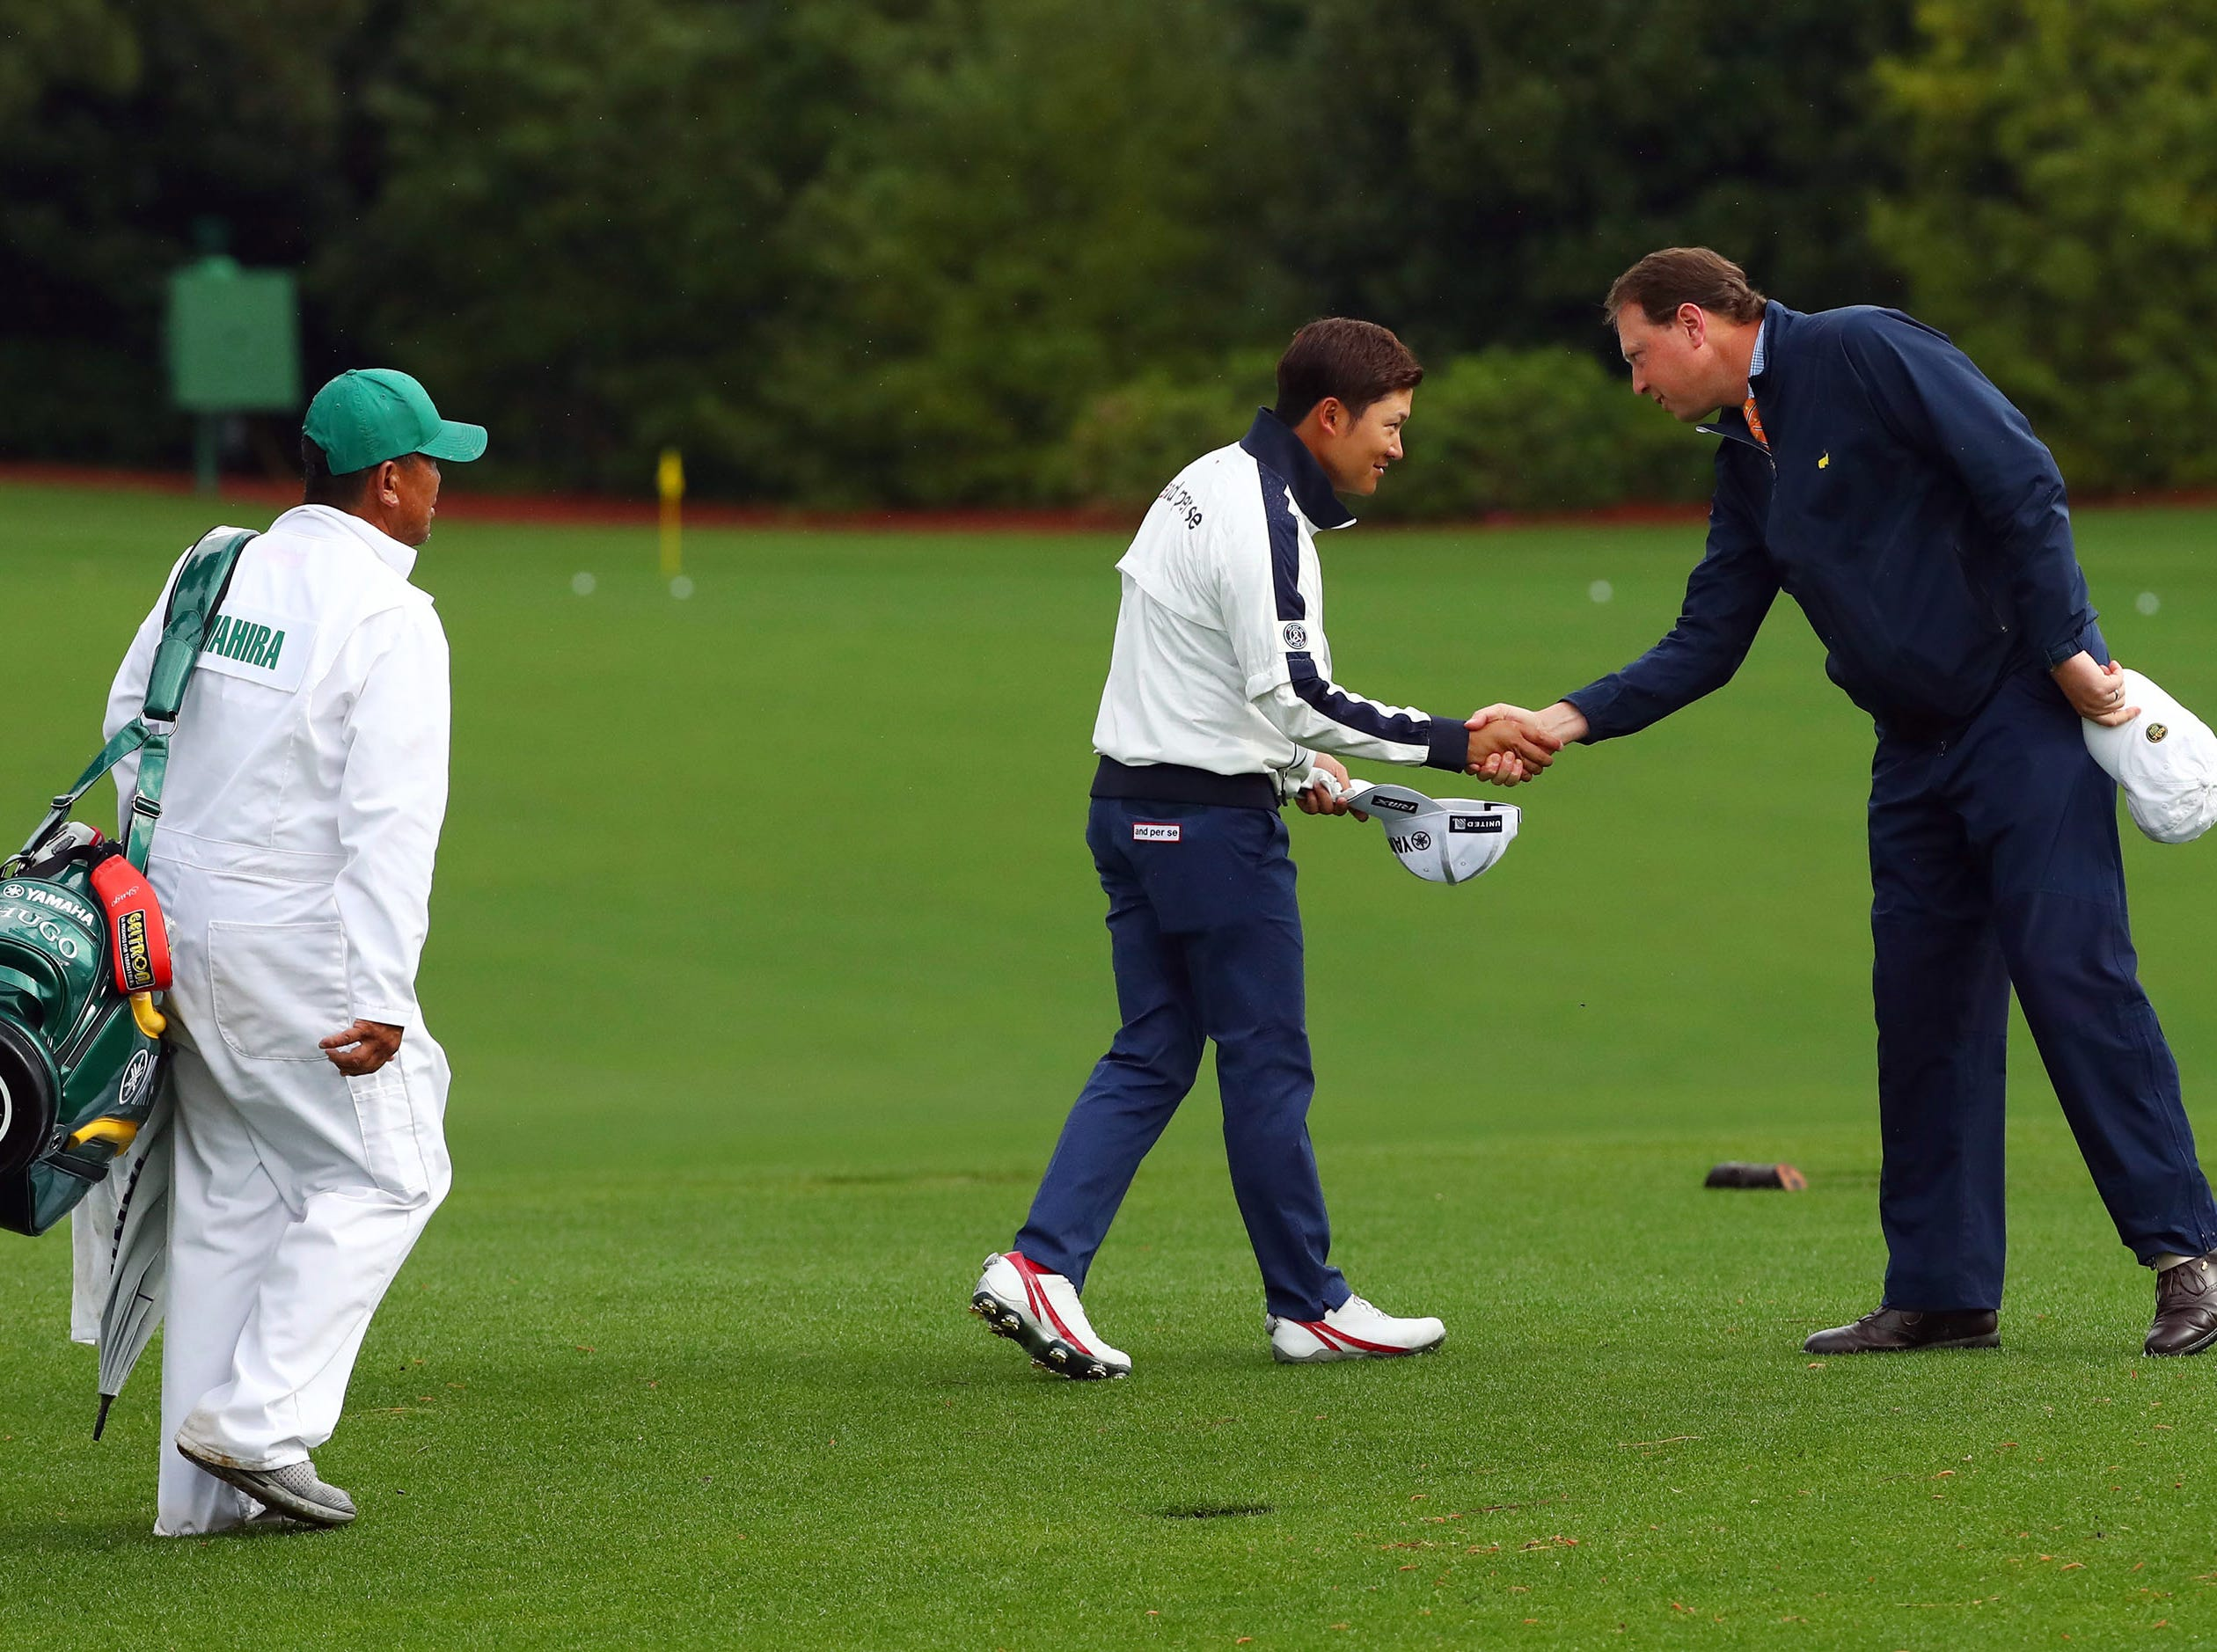 Apr 9, 2019; Augusta, GA, USA; Shugo Imahira of Japan (center) is greeted at the practice facility during a practice round for The Masters golf tournament at Augusta National Golf Club. Mandatory Credit: Rob Schumacher-USA TODAY Sports